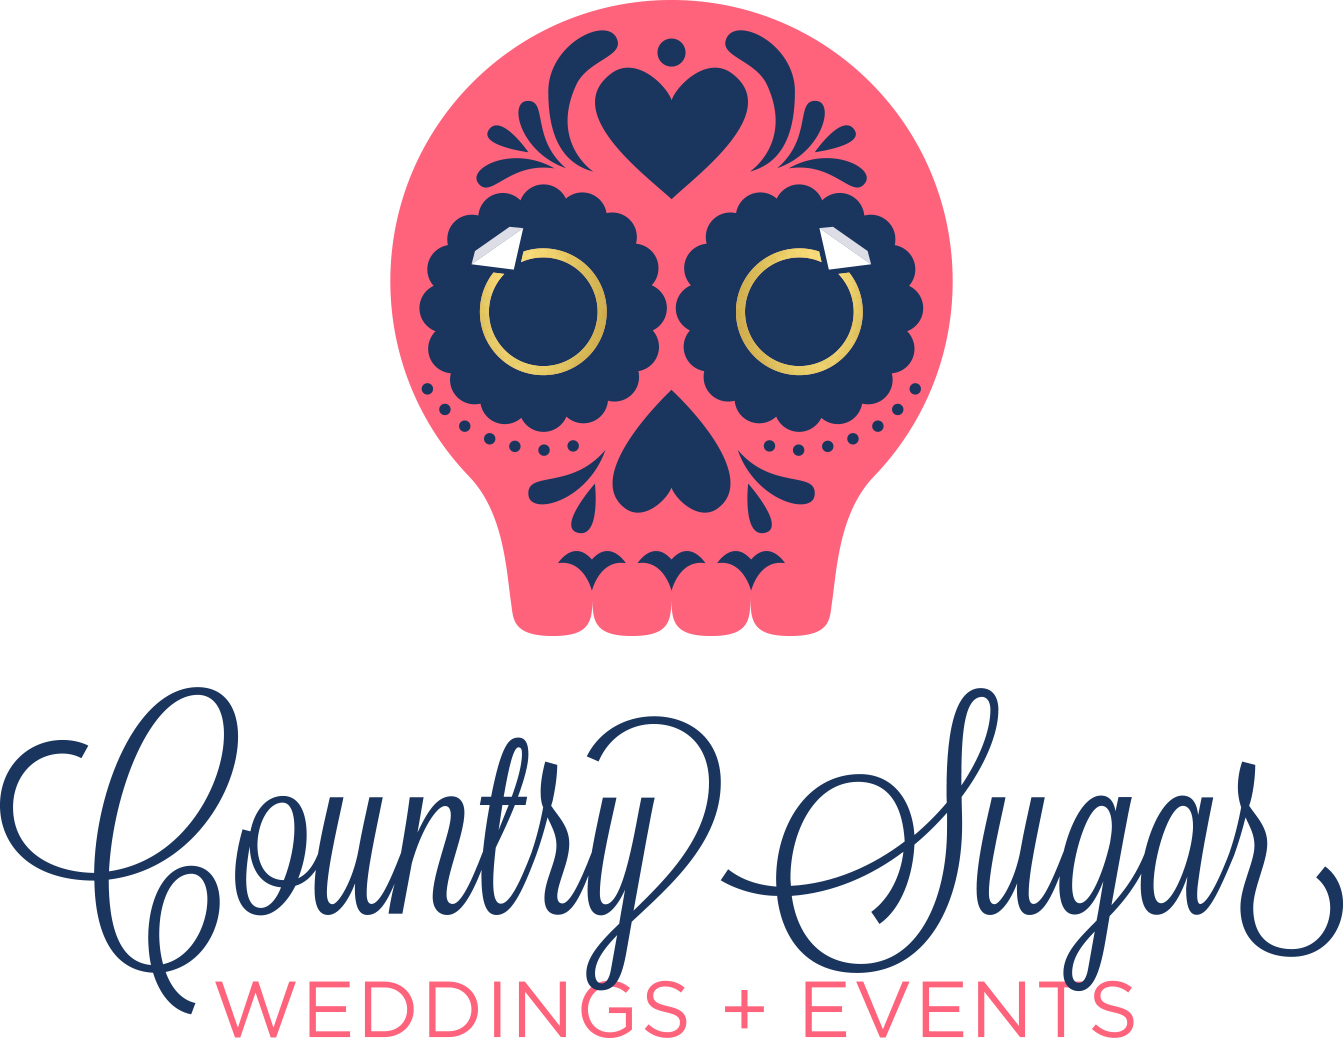 San Antonio Wedding Planner | Event Coordinator